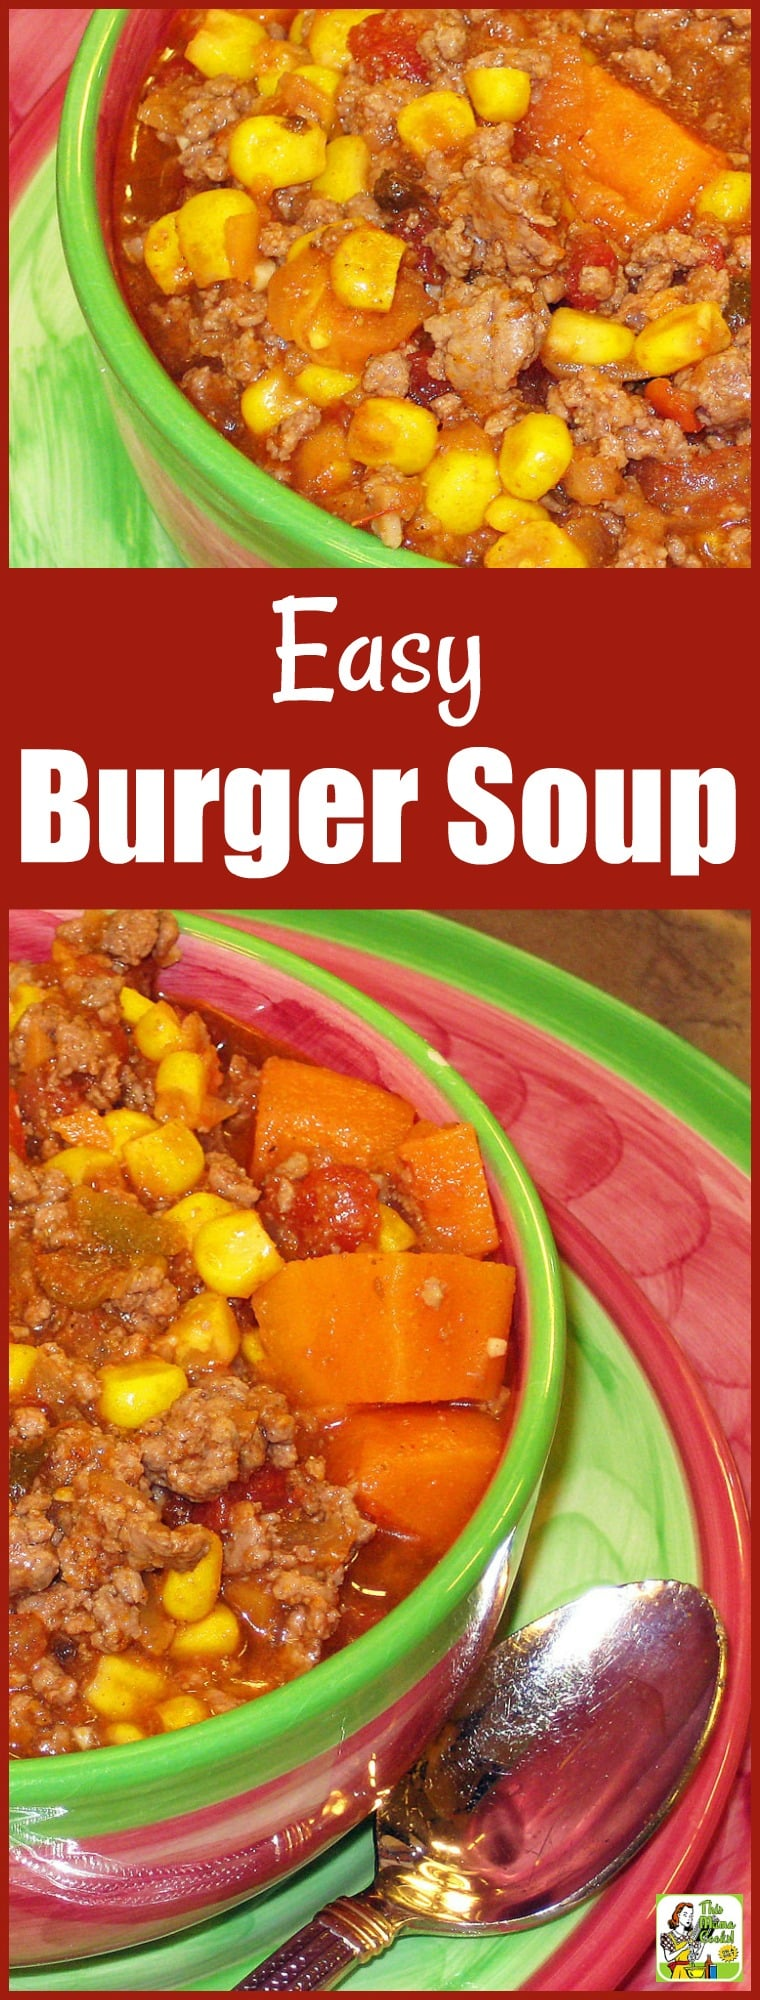 Easy Burger Soup Recipe